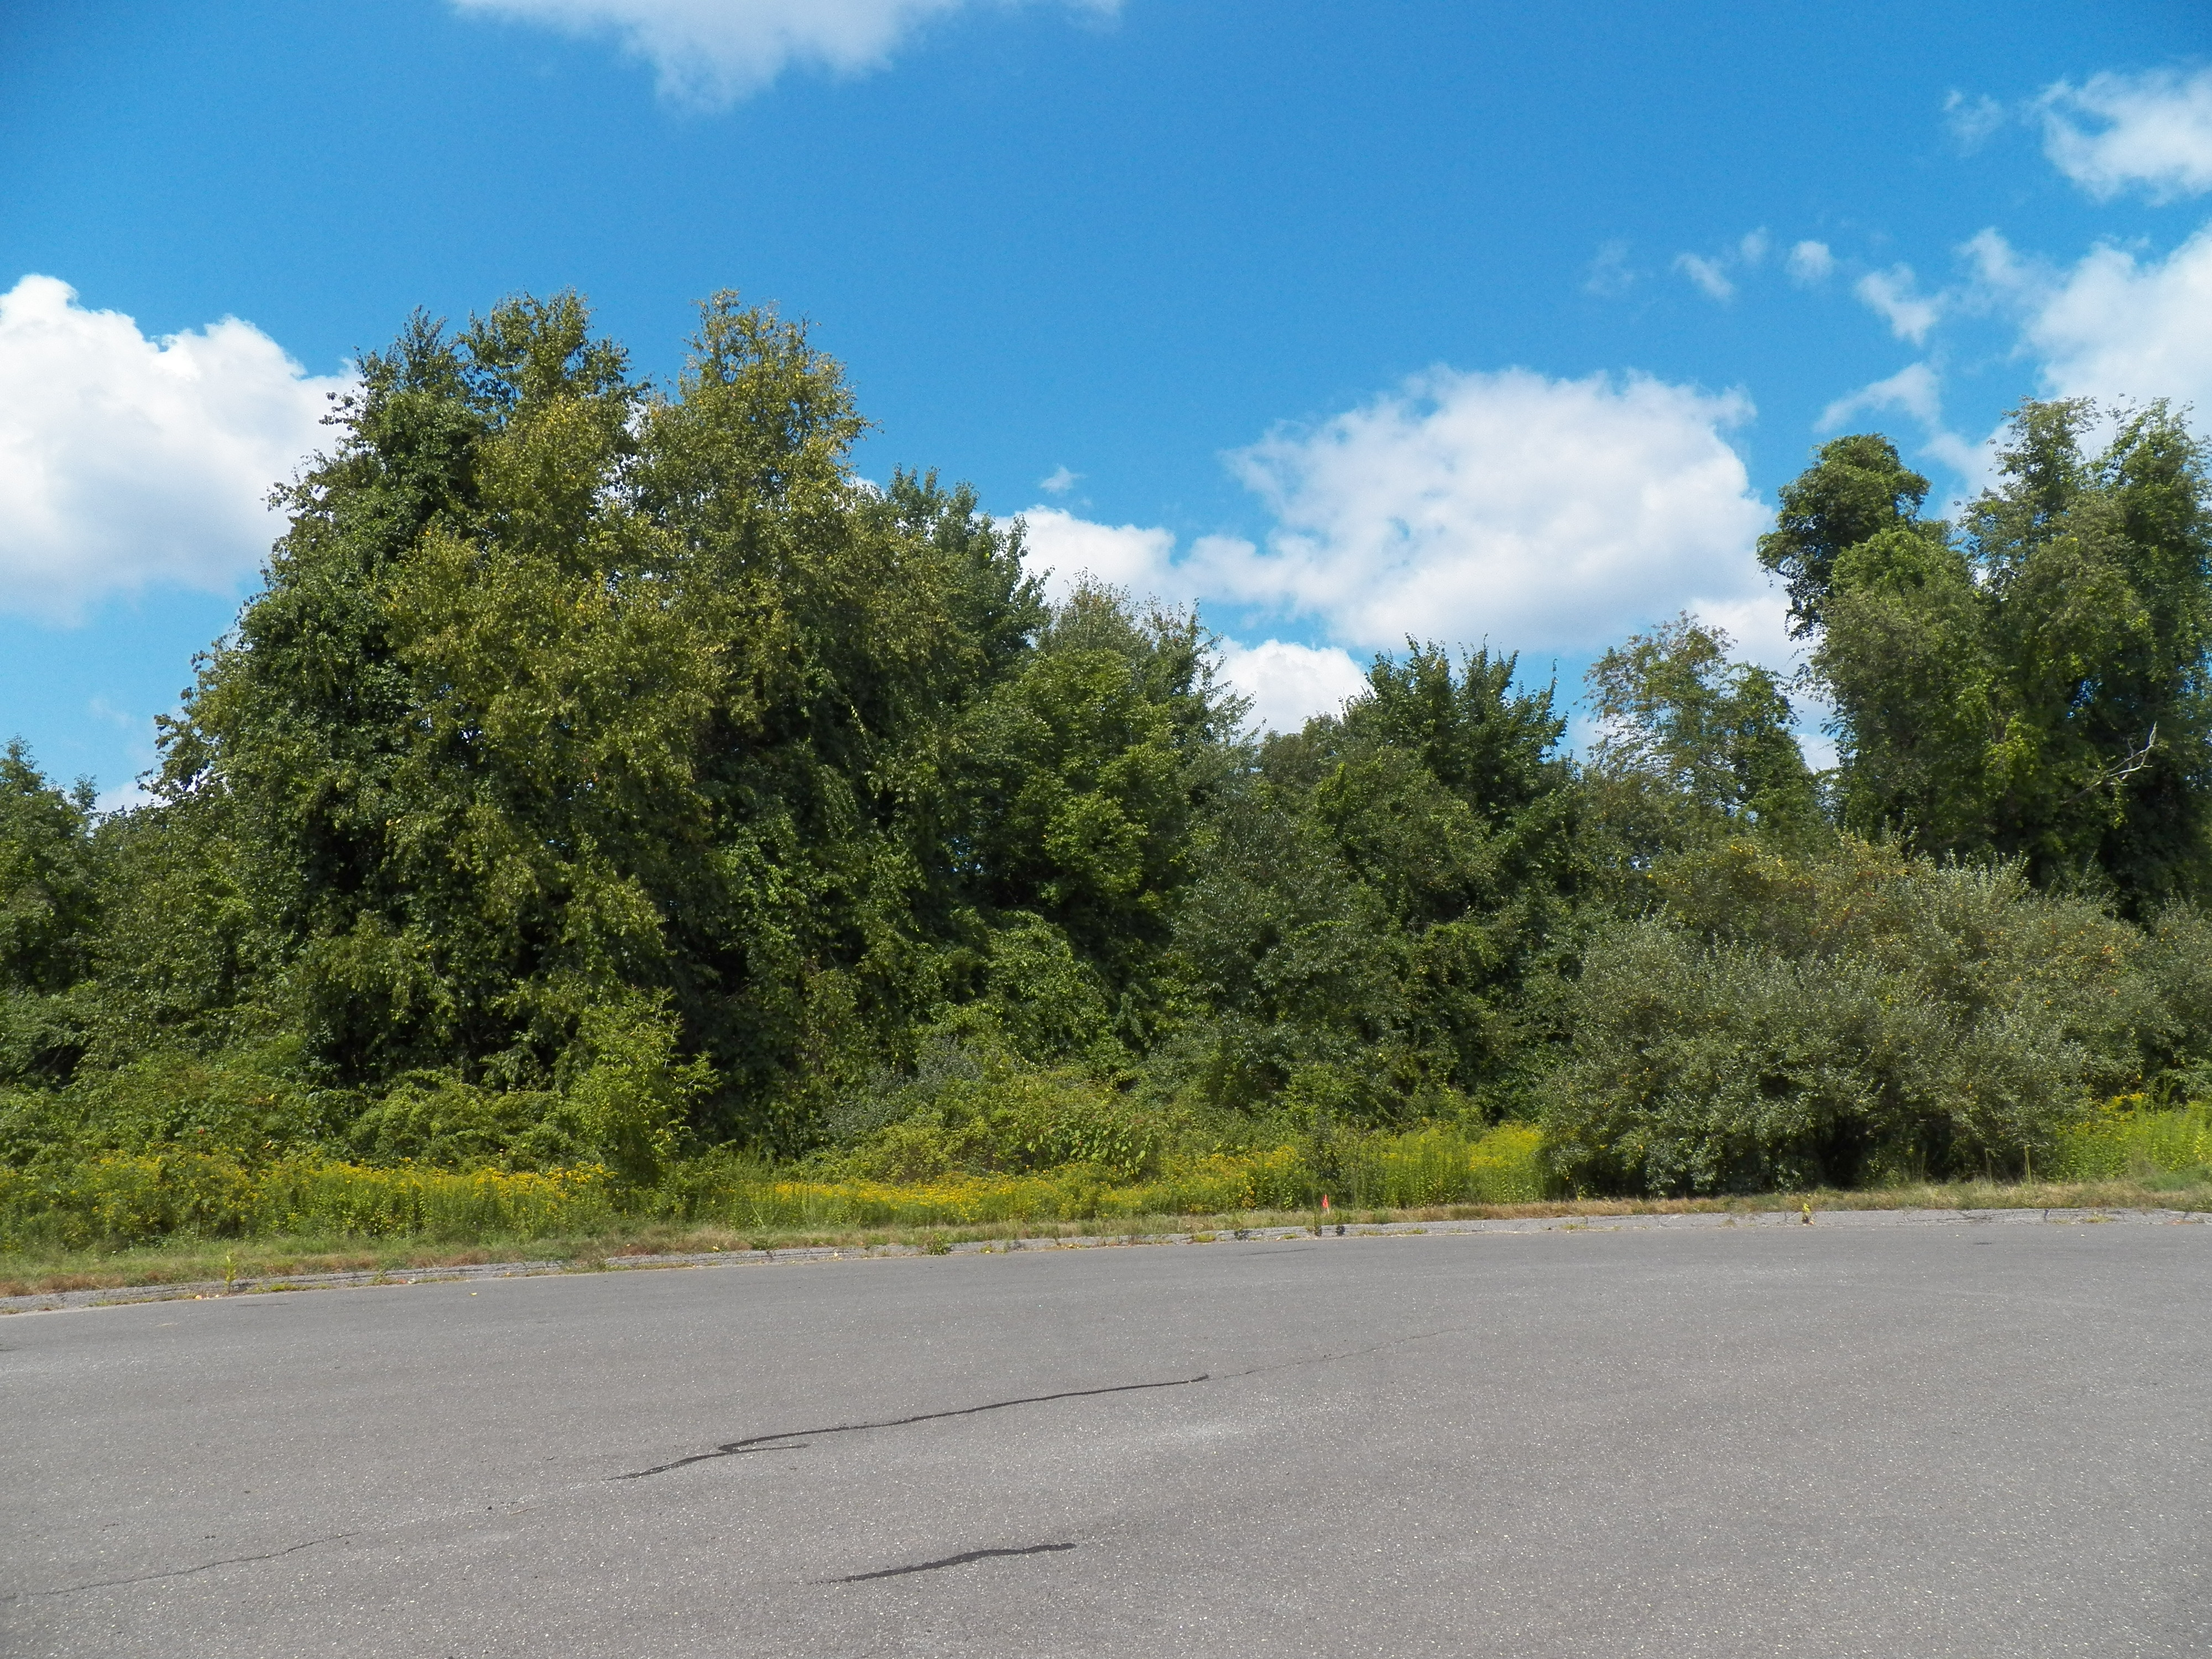 Land for Sale at Quiet Cul De Sac 21 Stone Oak Dr New Milford, Connecticut 06776 United States